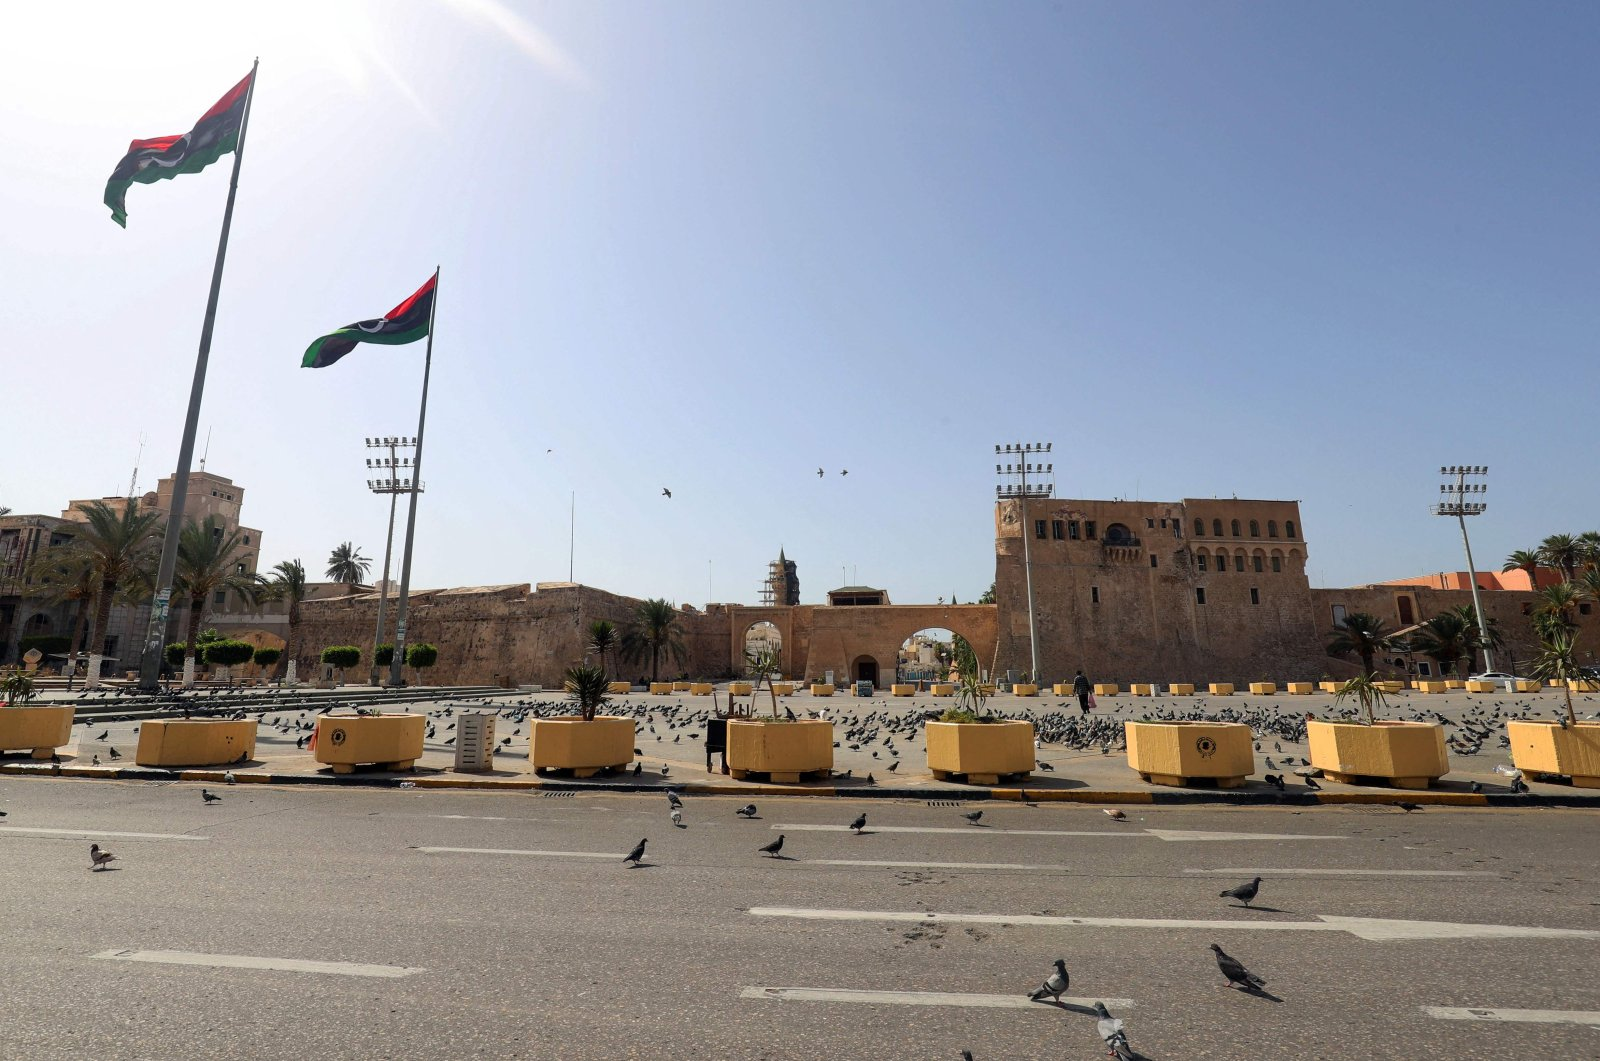 Pigeons fill the almost-empty Martyrs square a day after the authorities announced a total curfew throughout the weekend, to mitigate the spread of the COVID-19 pandemic, in the capital Tripoli, Libya, Aug. 7, 2021. (AFP Photo)